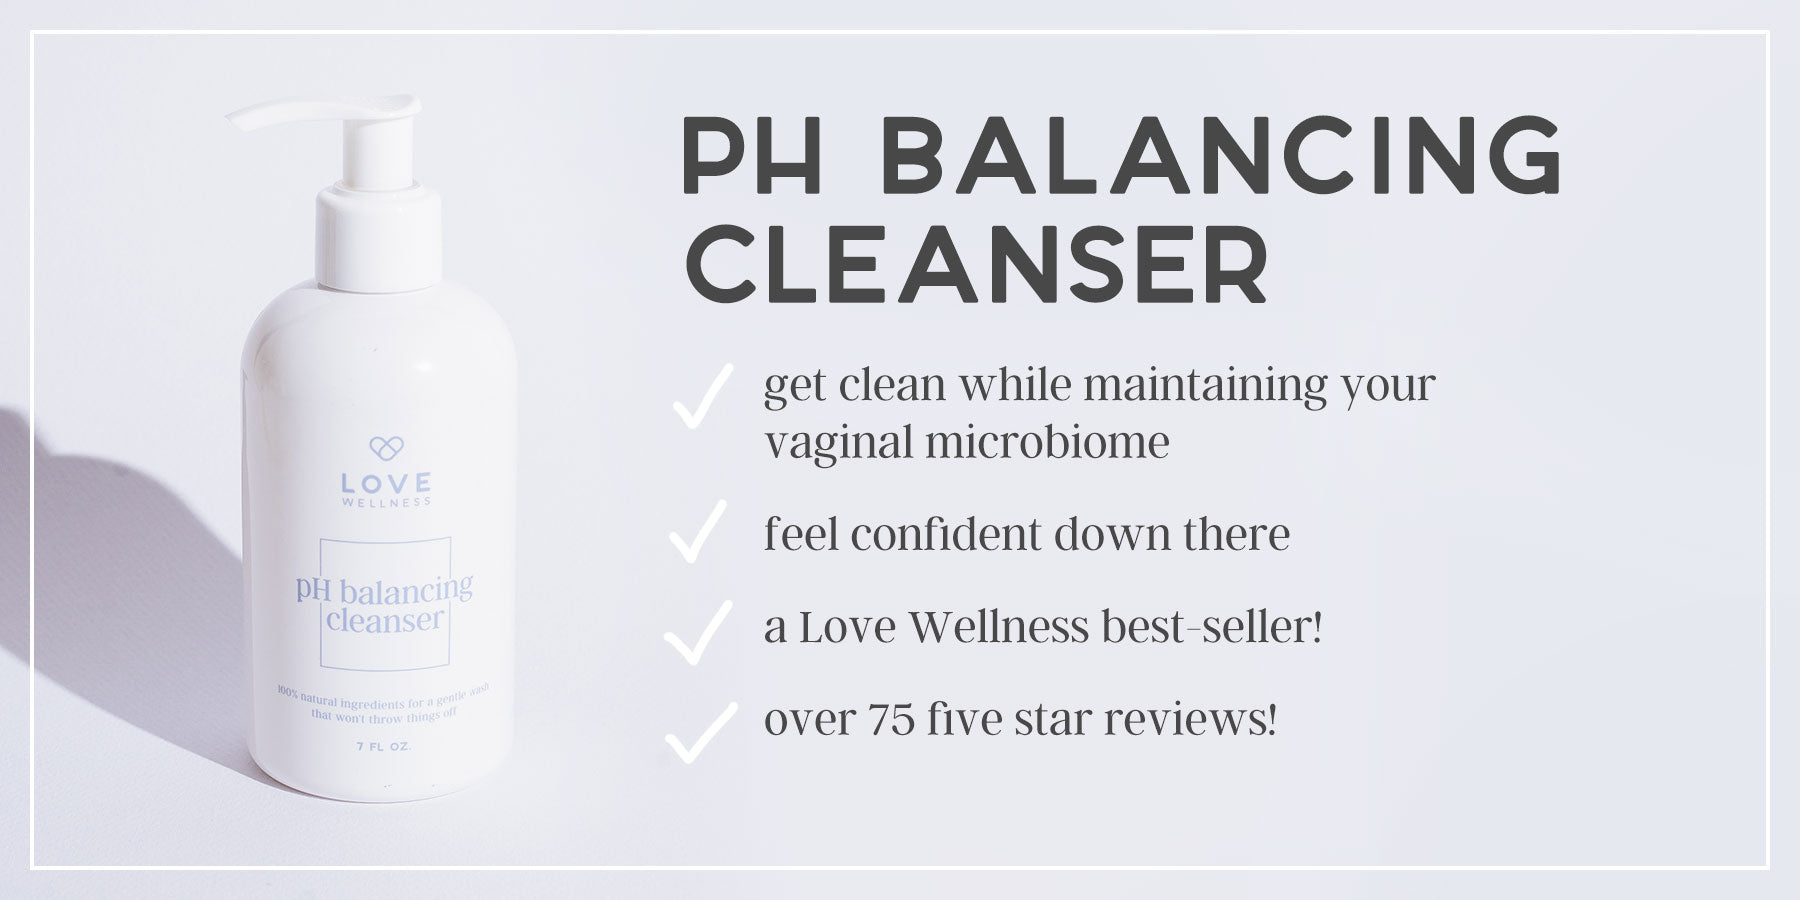 ph balancing cleanser, get clean while maintaining your vaginal microbiome